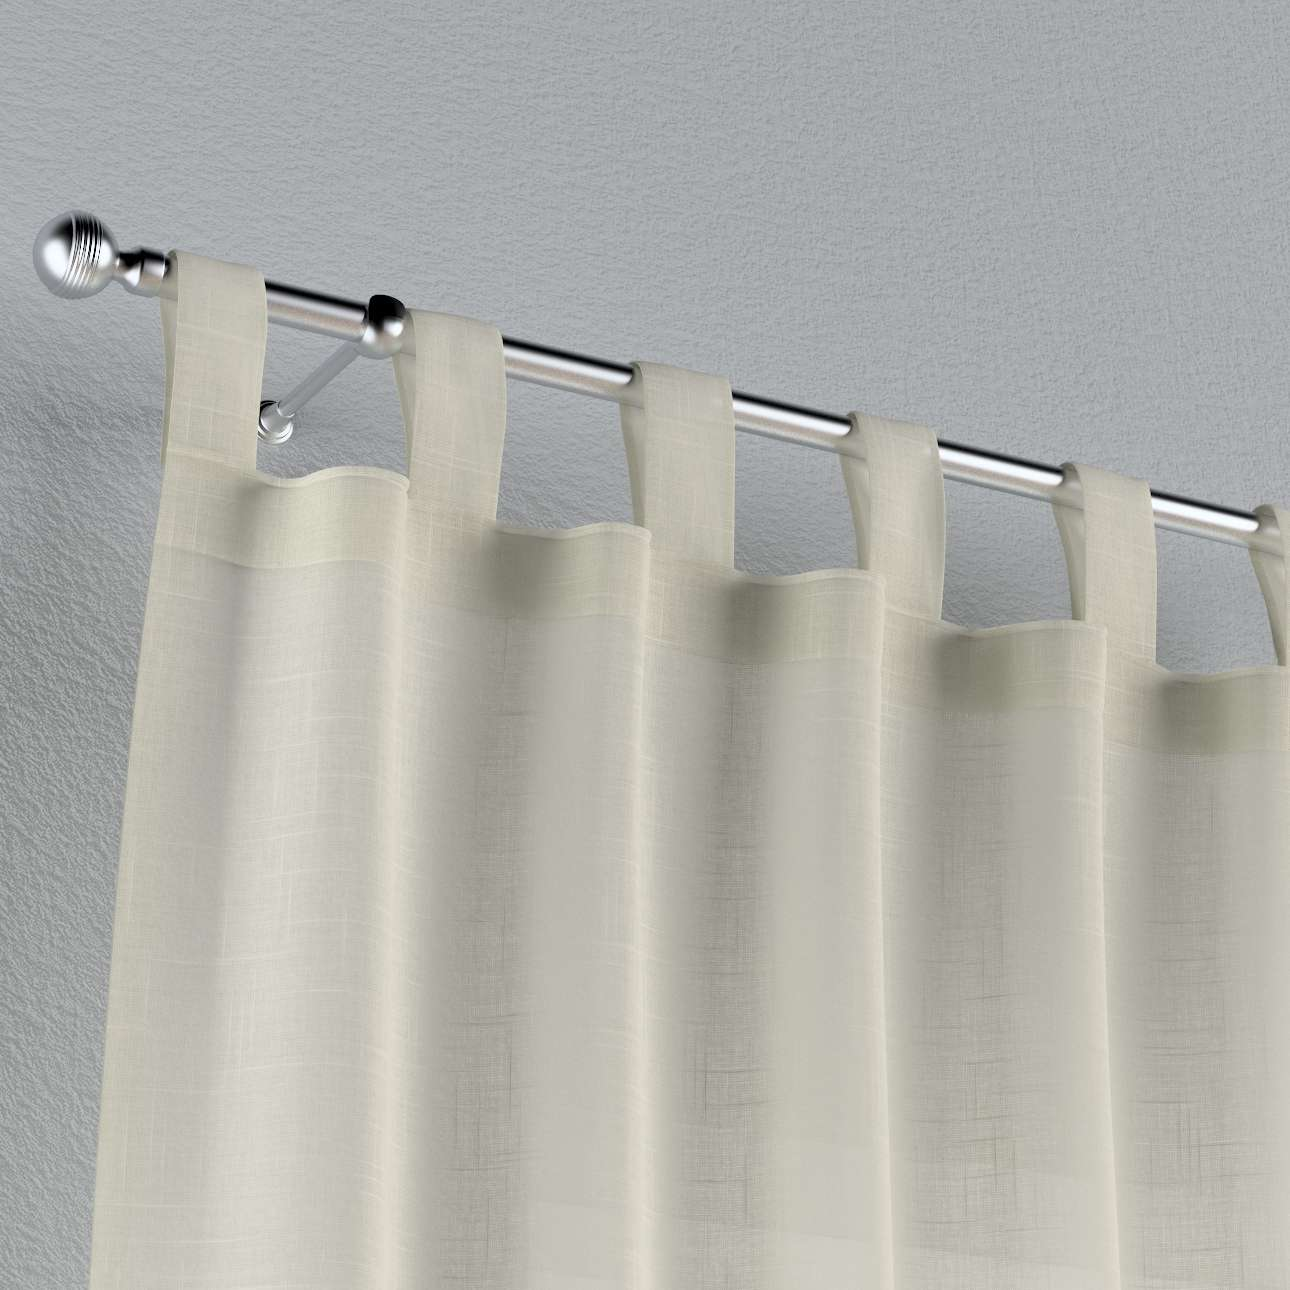 Tab top curtains 130 × 260 cm (51 × 102 inch) in collection Romantica, fabric: 128-88